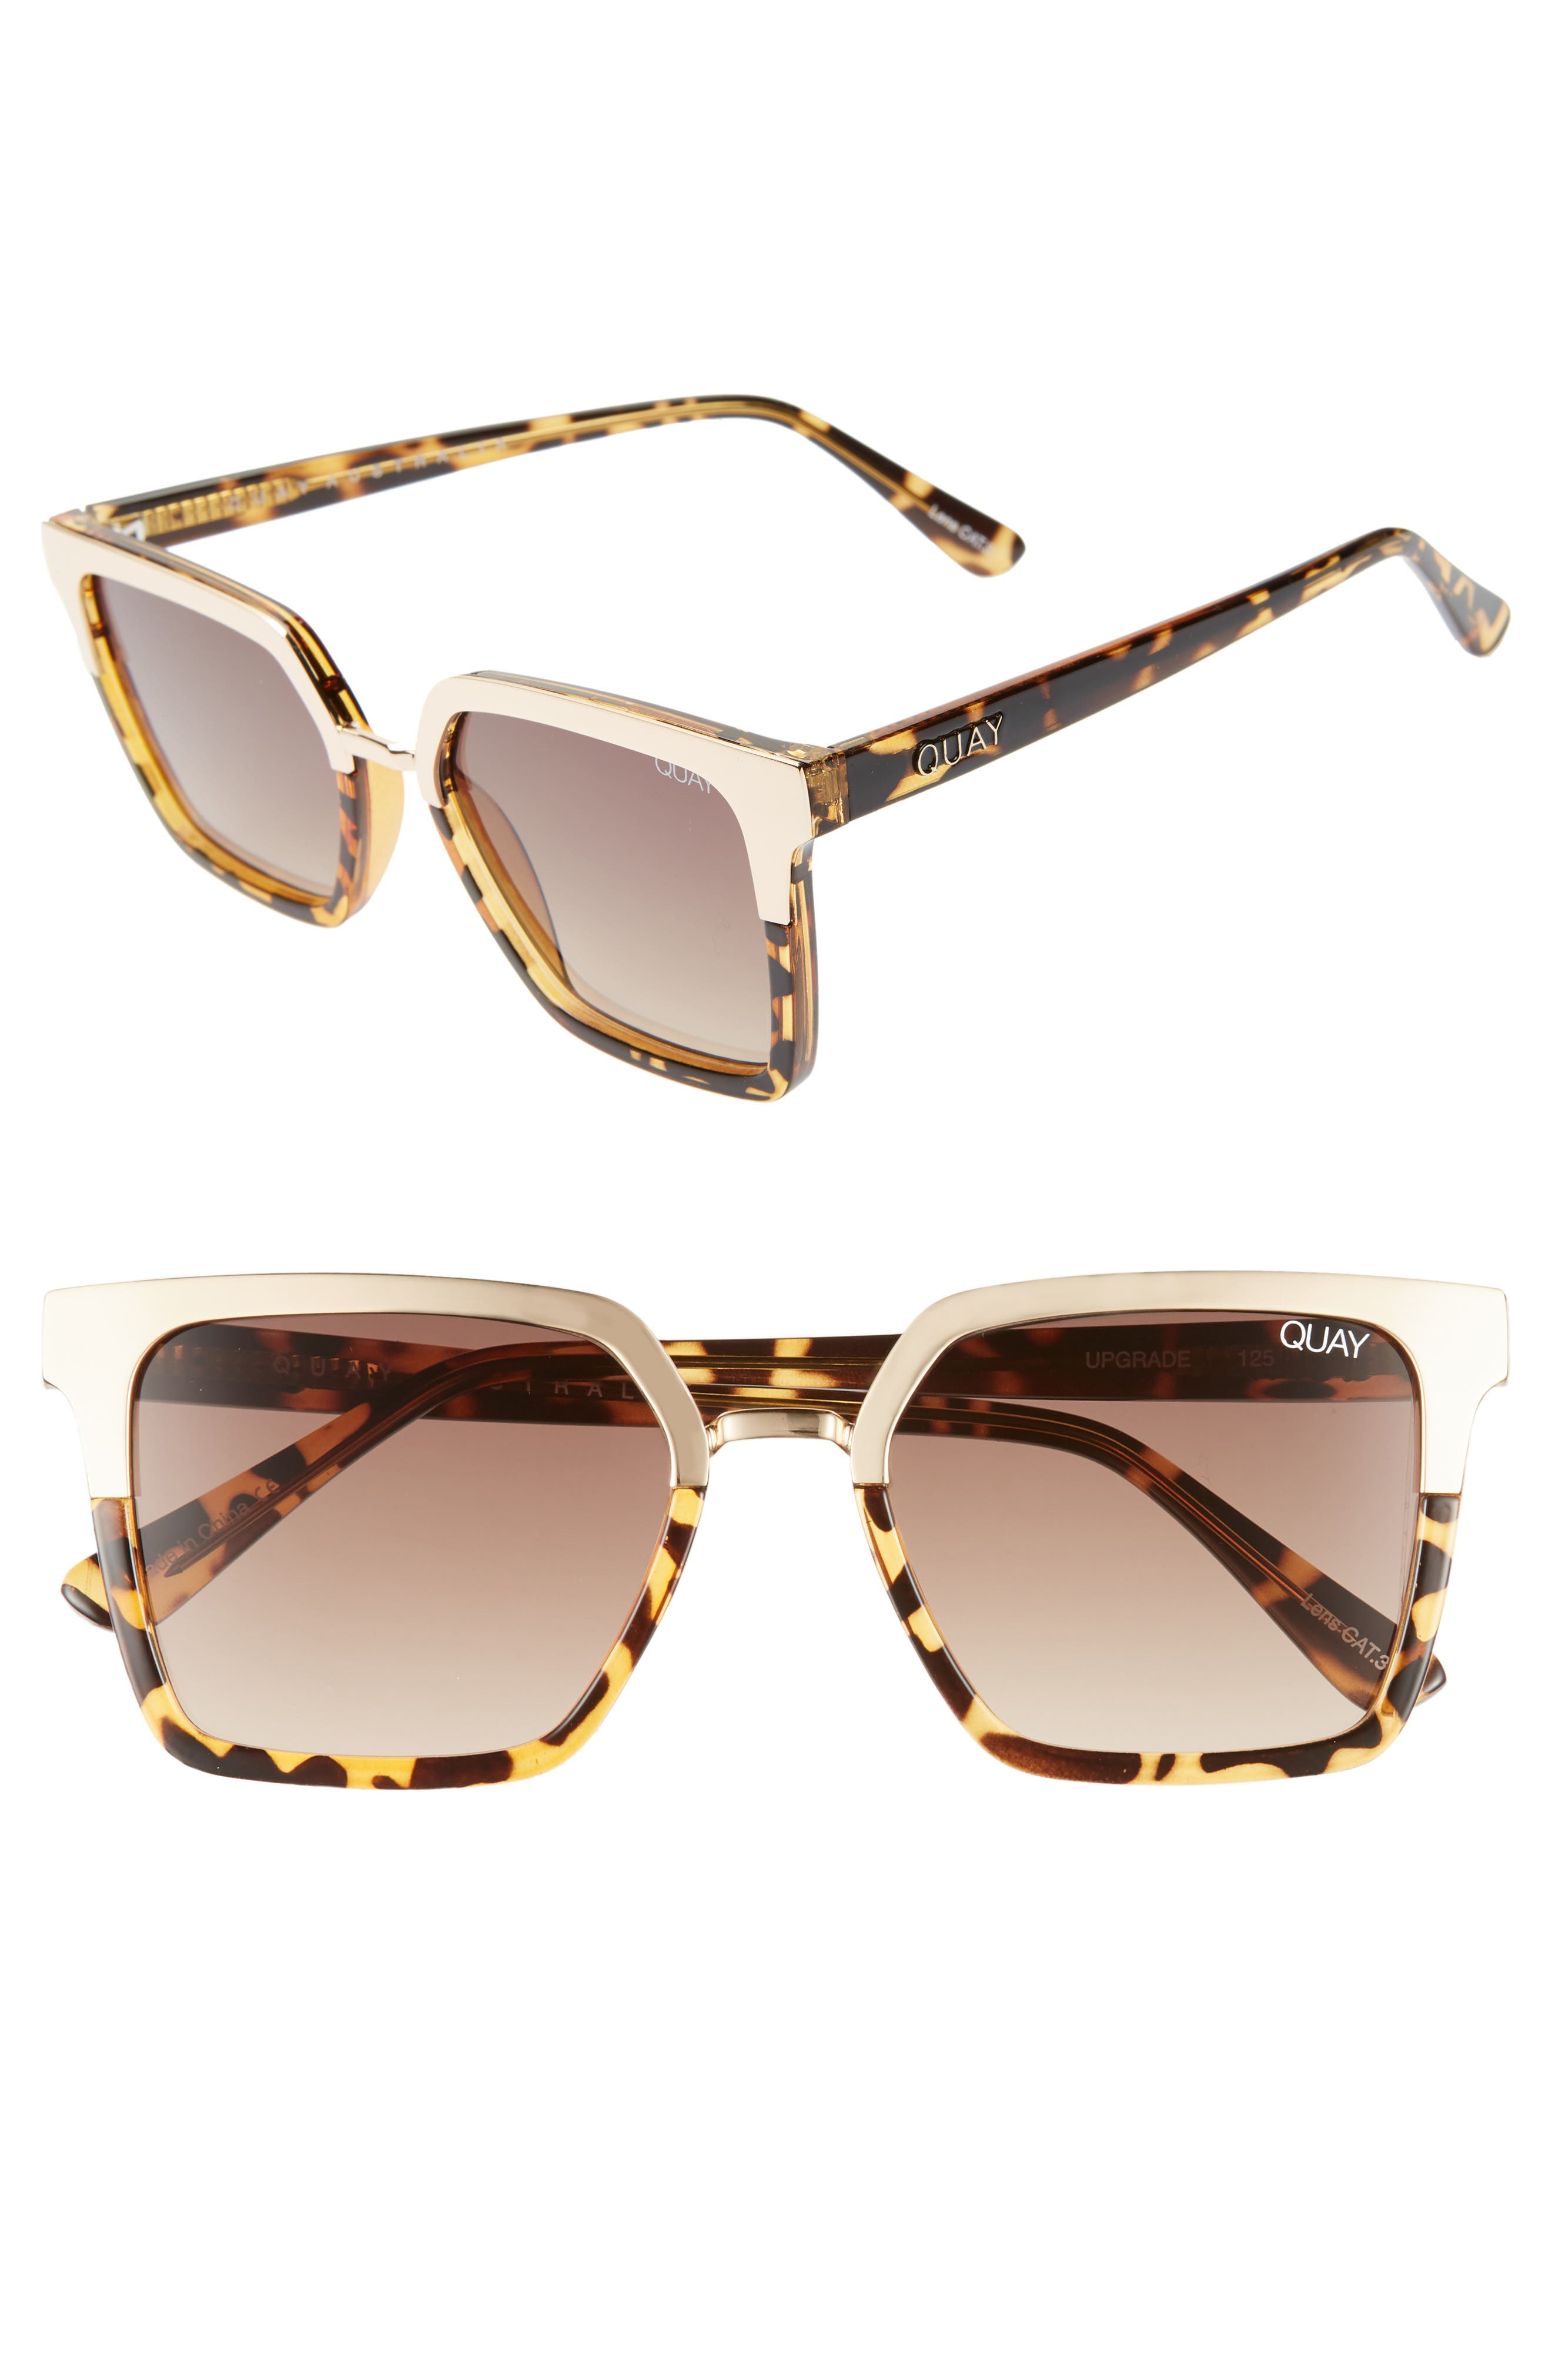 x Jaclyn Hill Upgrade 55mm Square Sunglasses,                         Main,                         color, TORT GOLD / BROWN